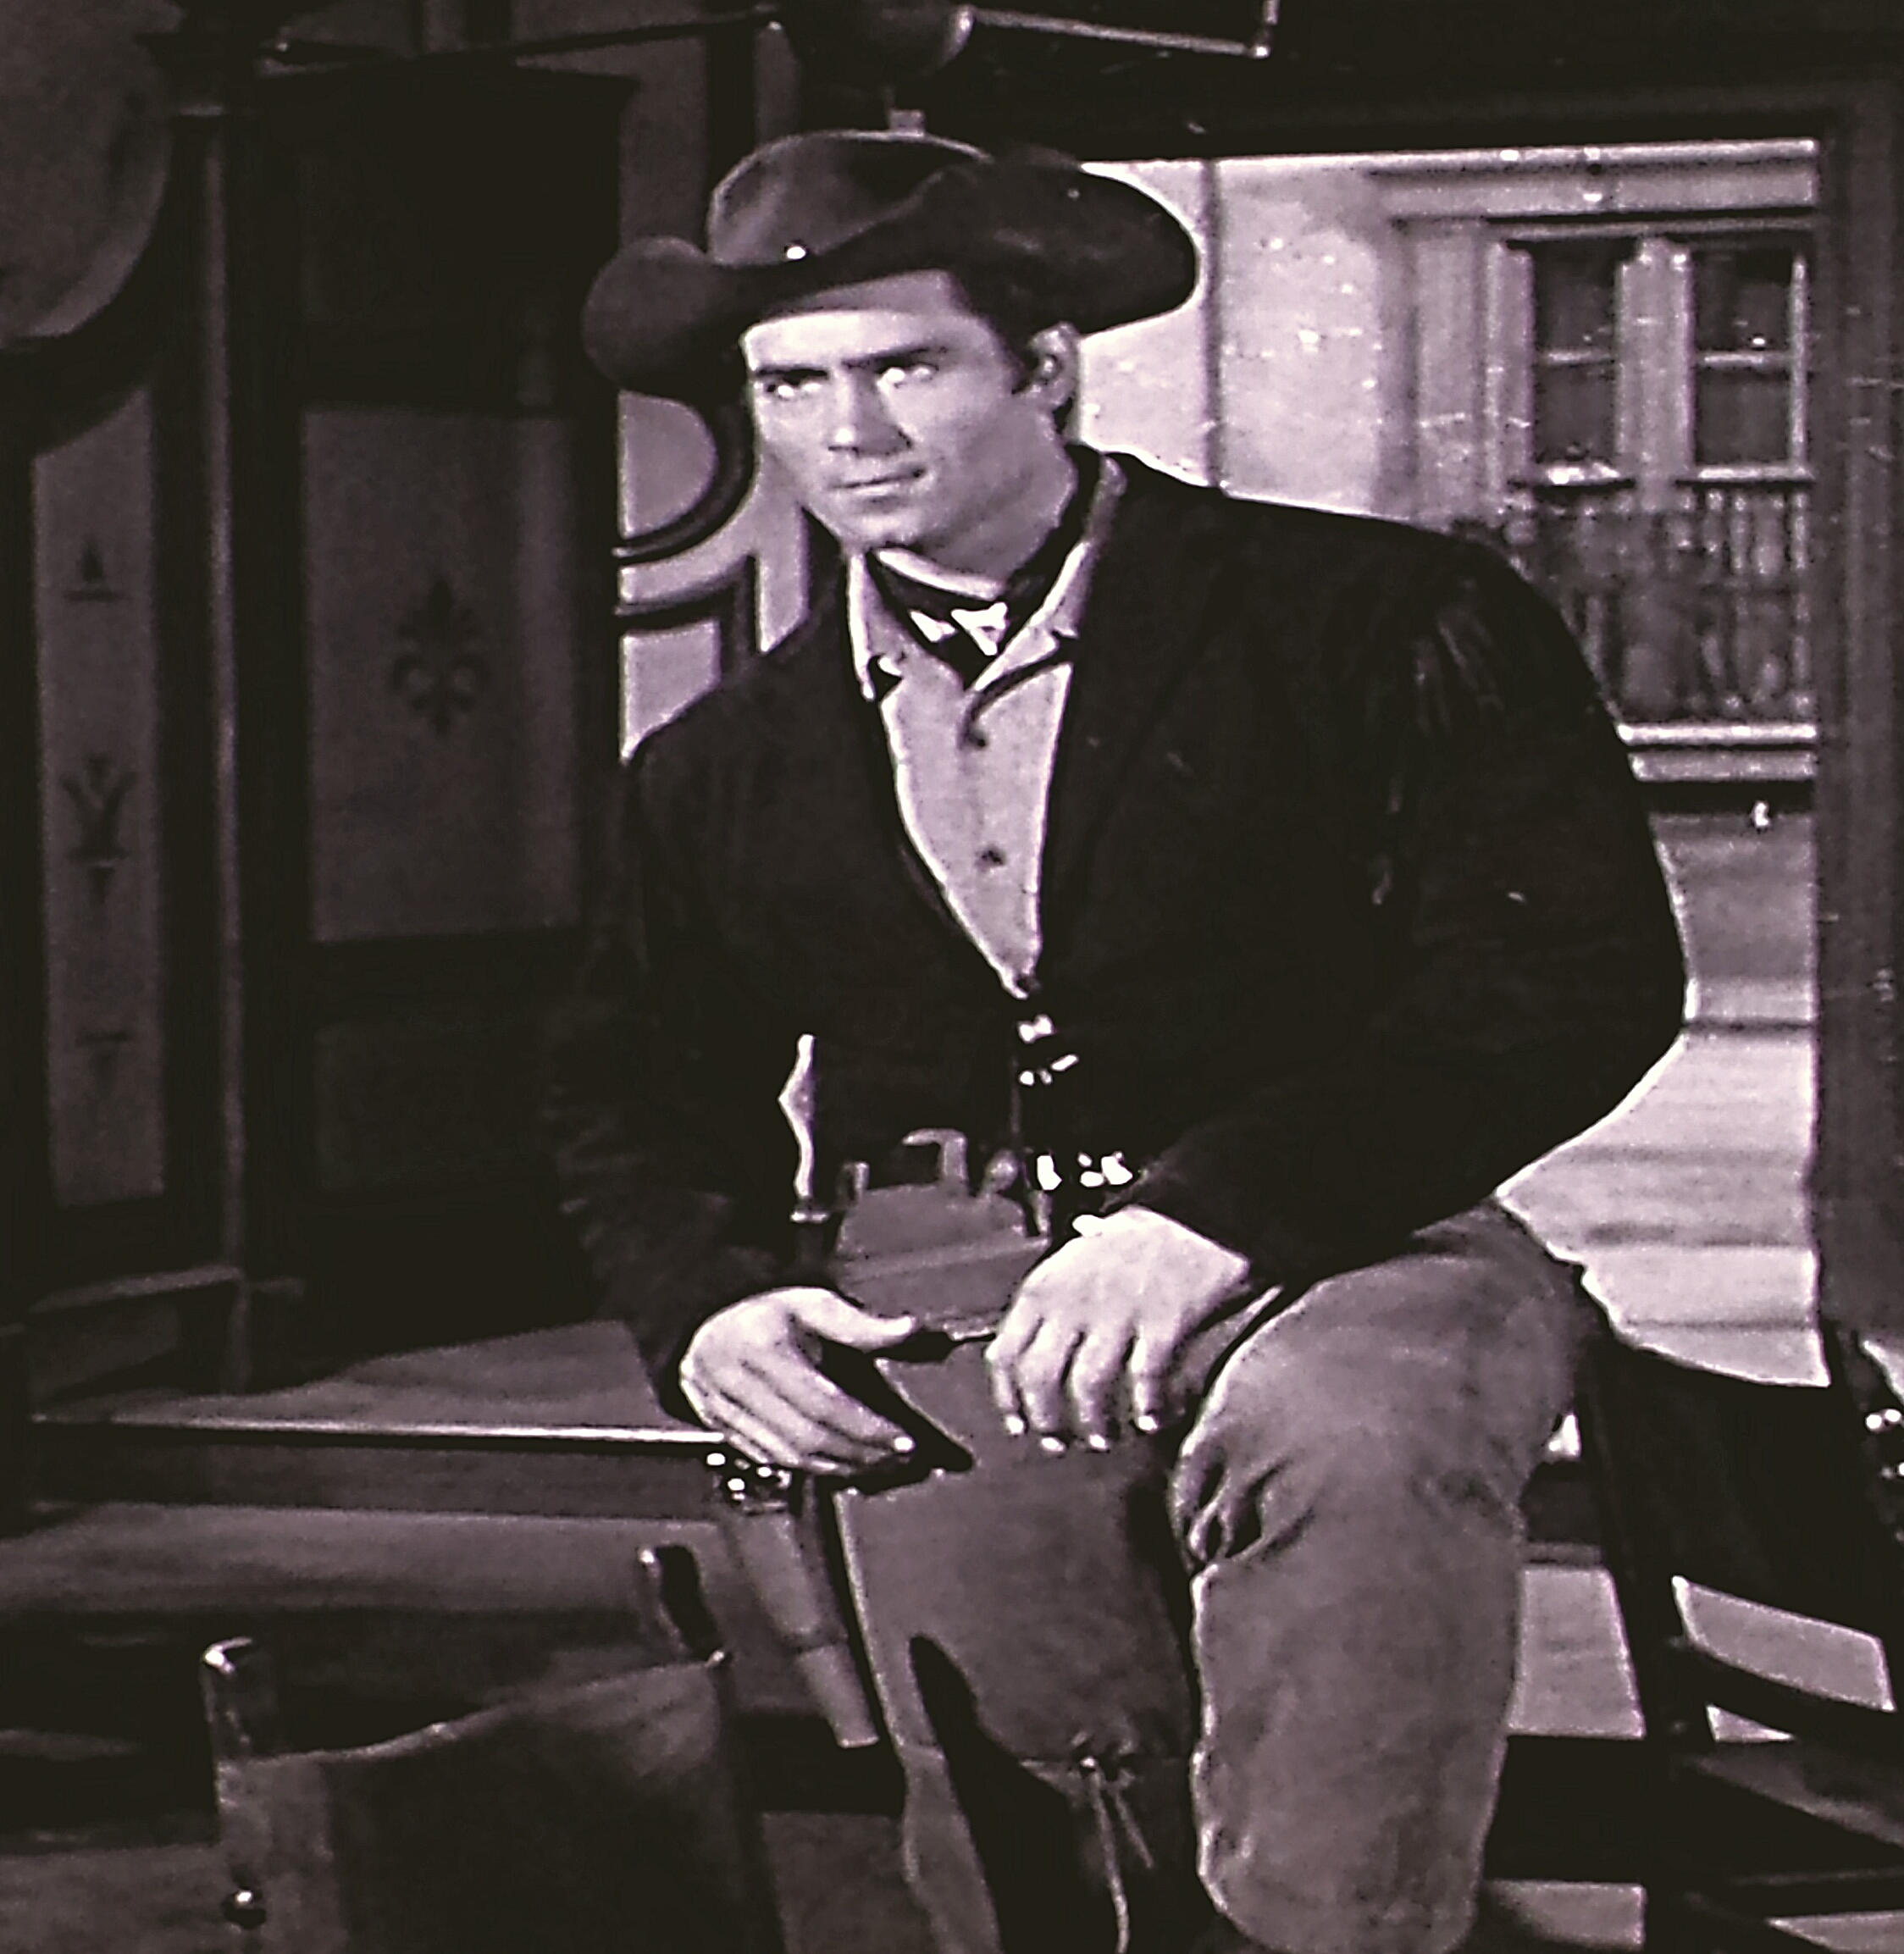 Clint Walker in Cheyenne (1955)